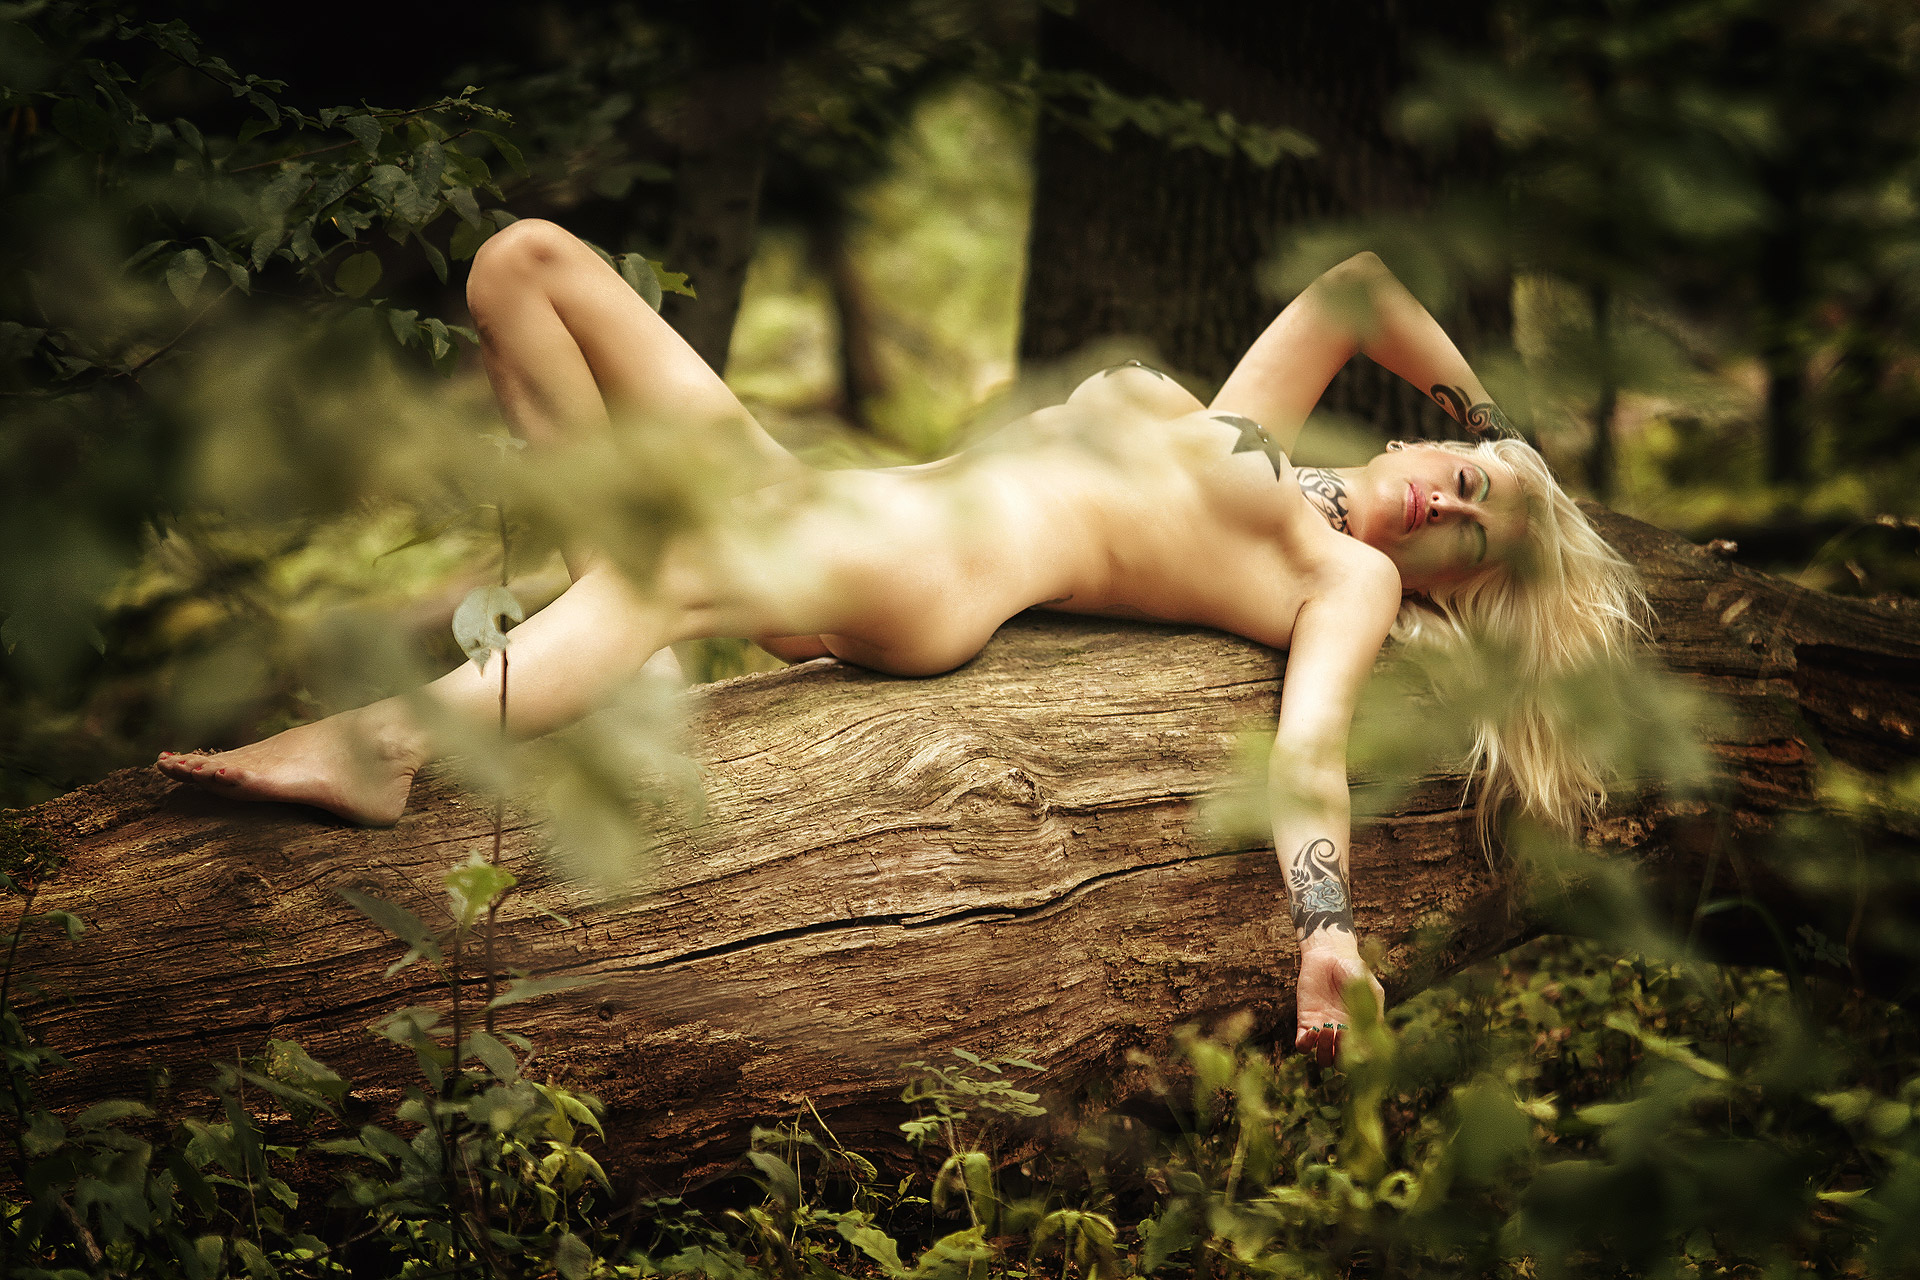 Alira Adore – Out in the woods